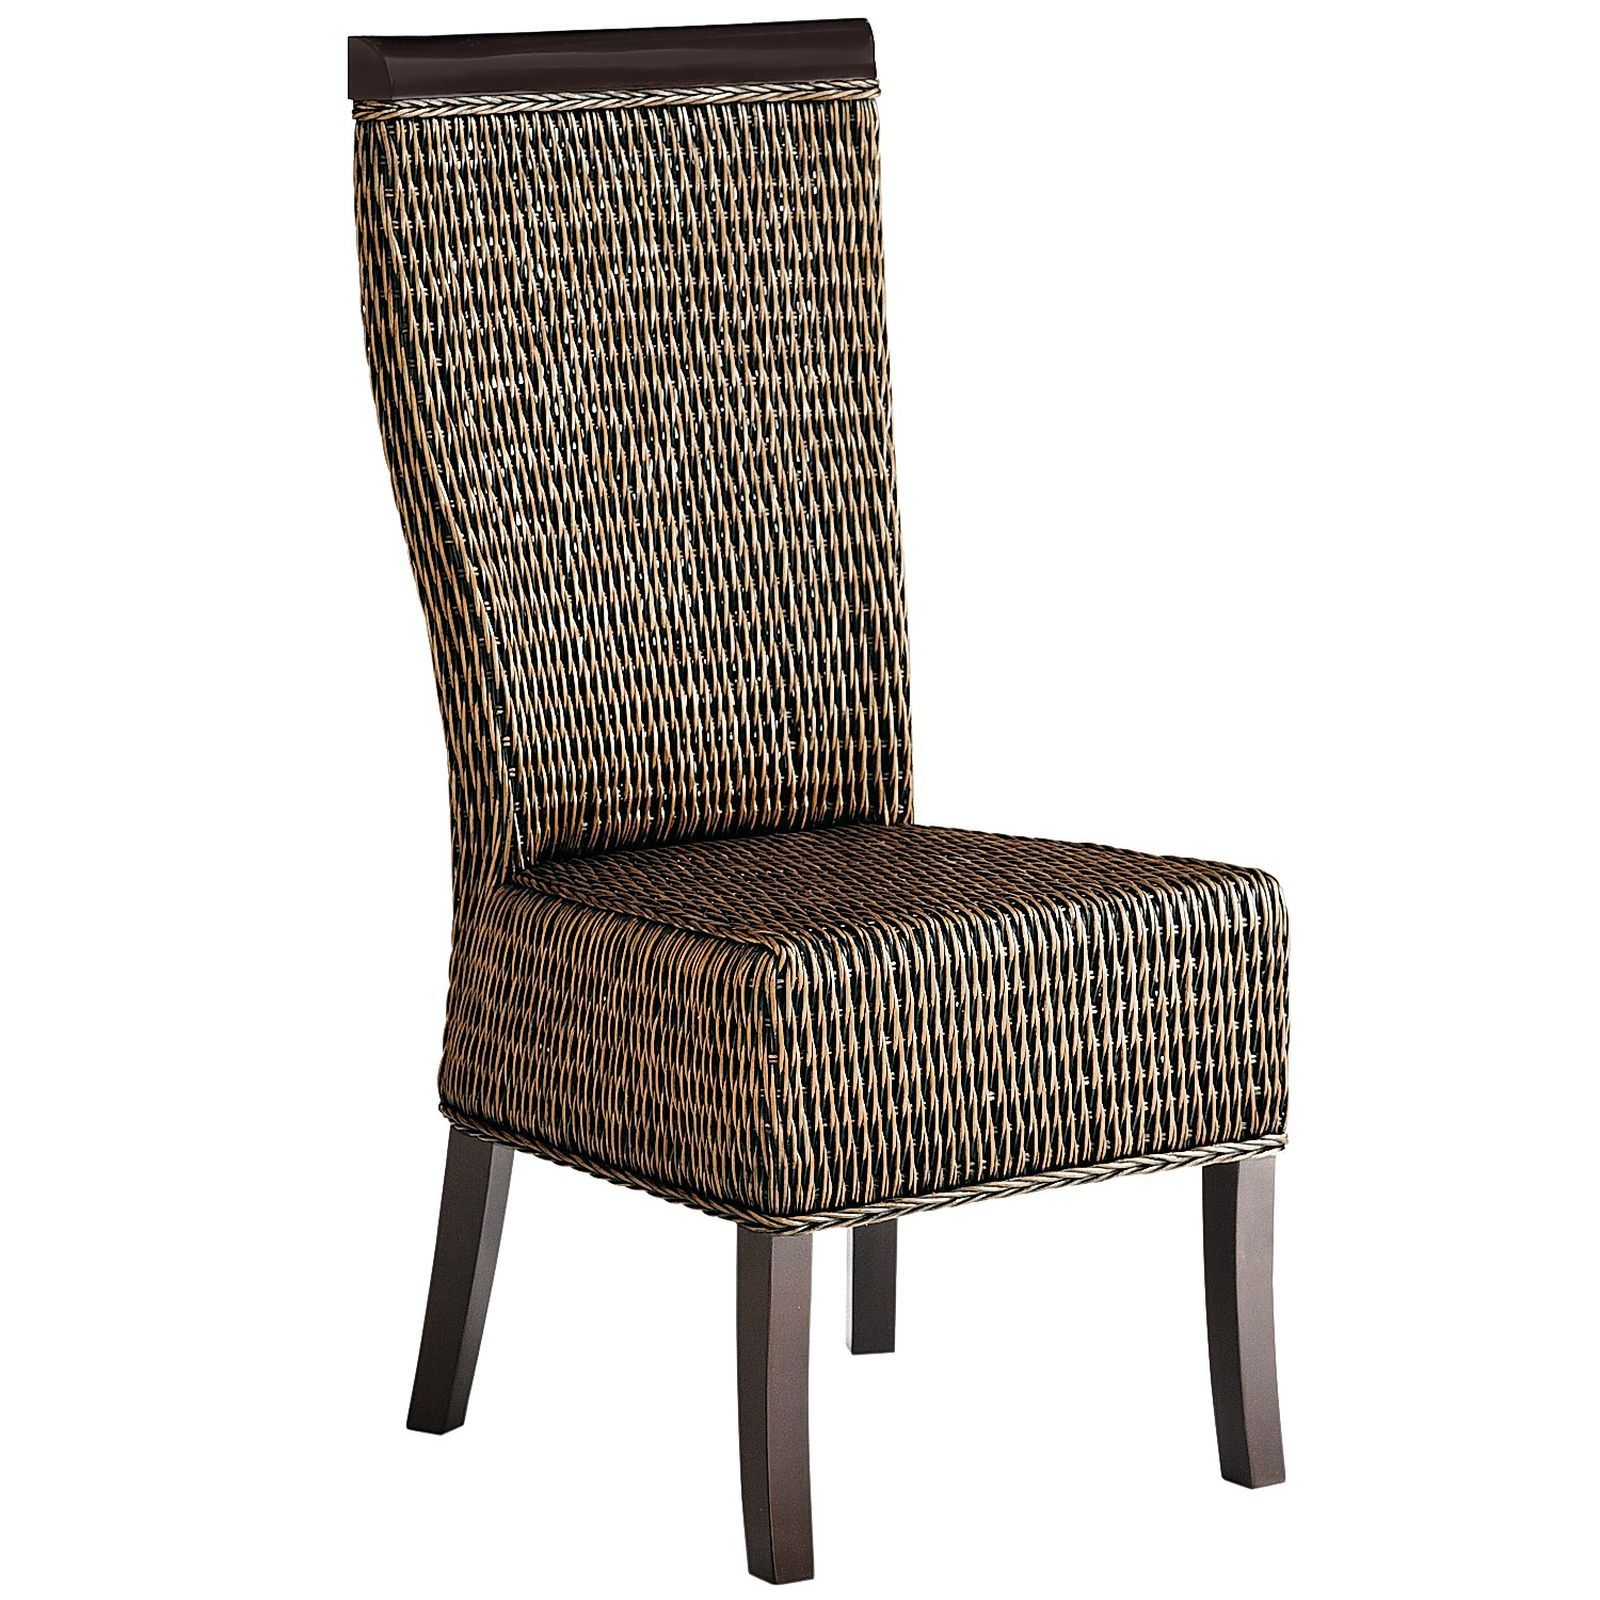 Our handcrafted rattan chair is fully dressed for dinner with a polished mango wood frame rattan chairsdining chairsapartment furniturepier 1